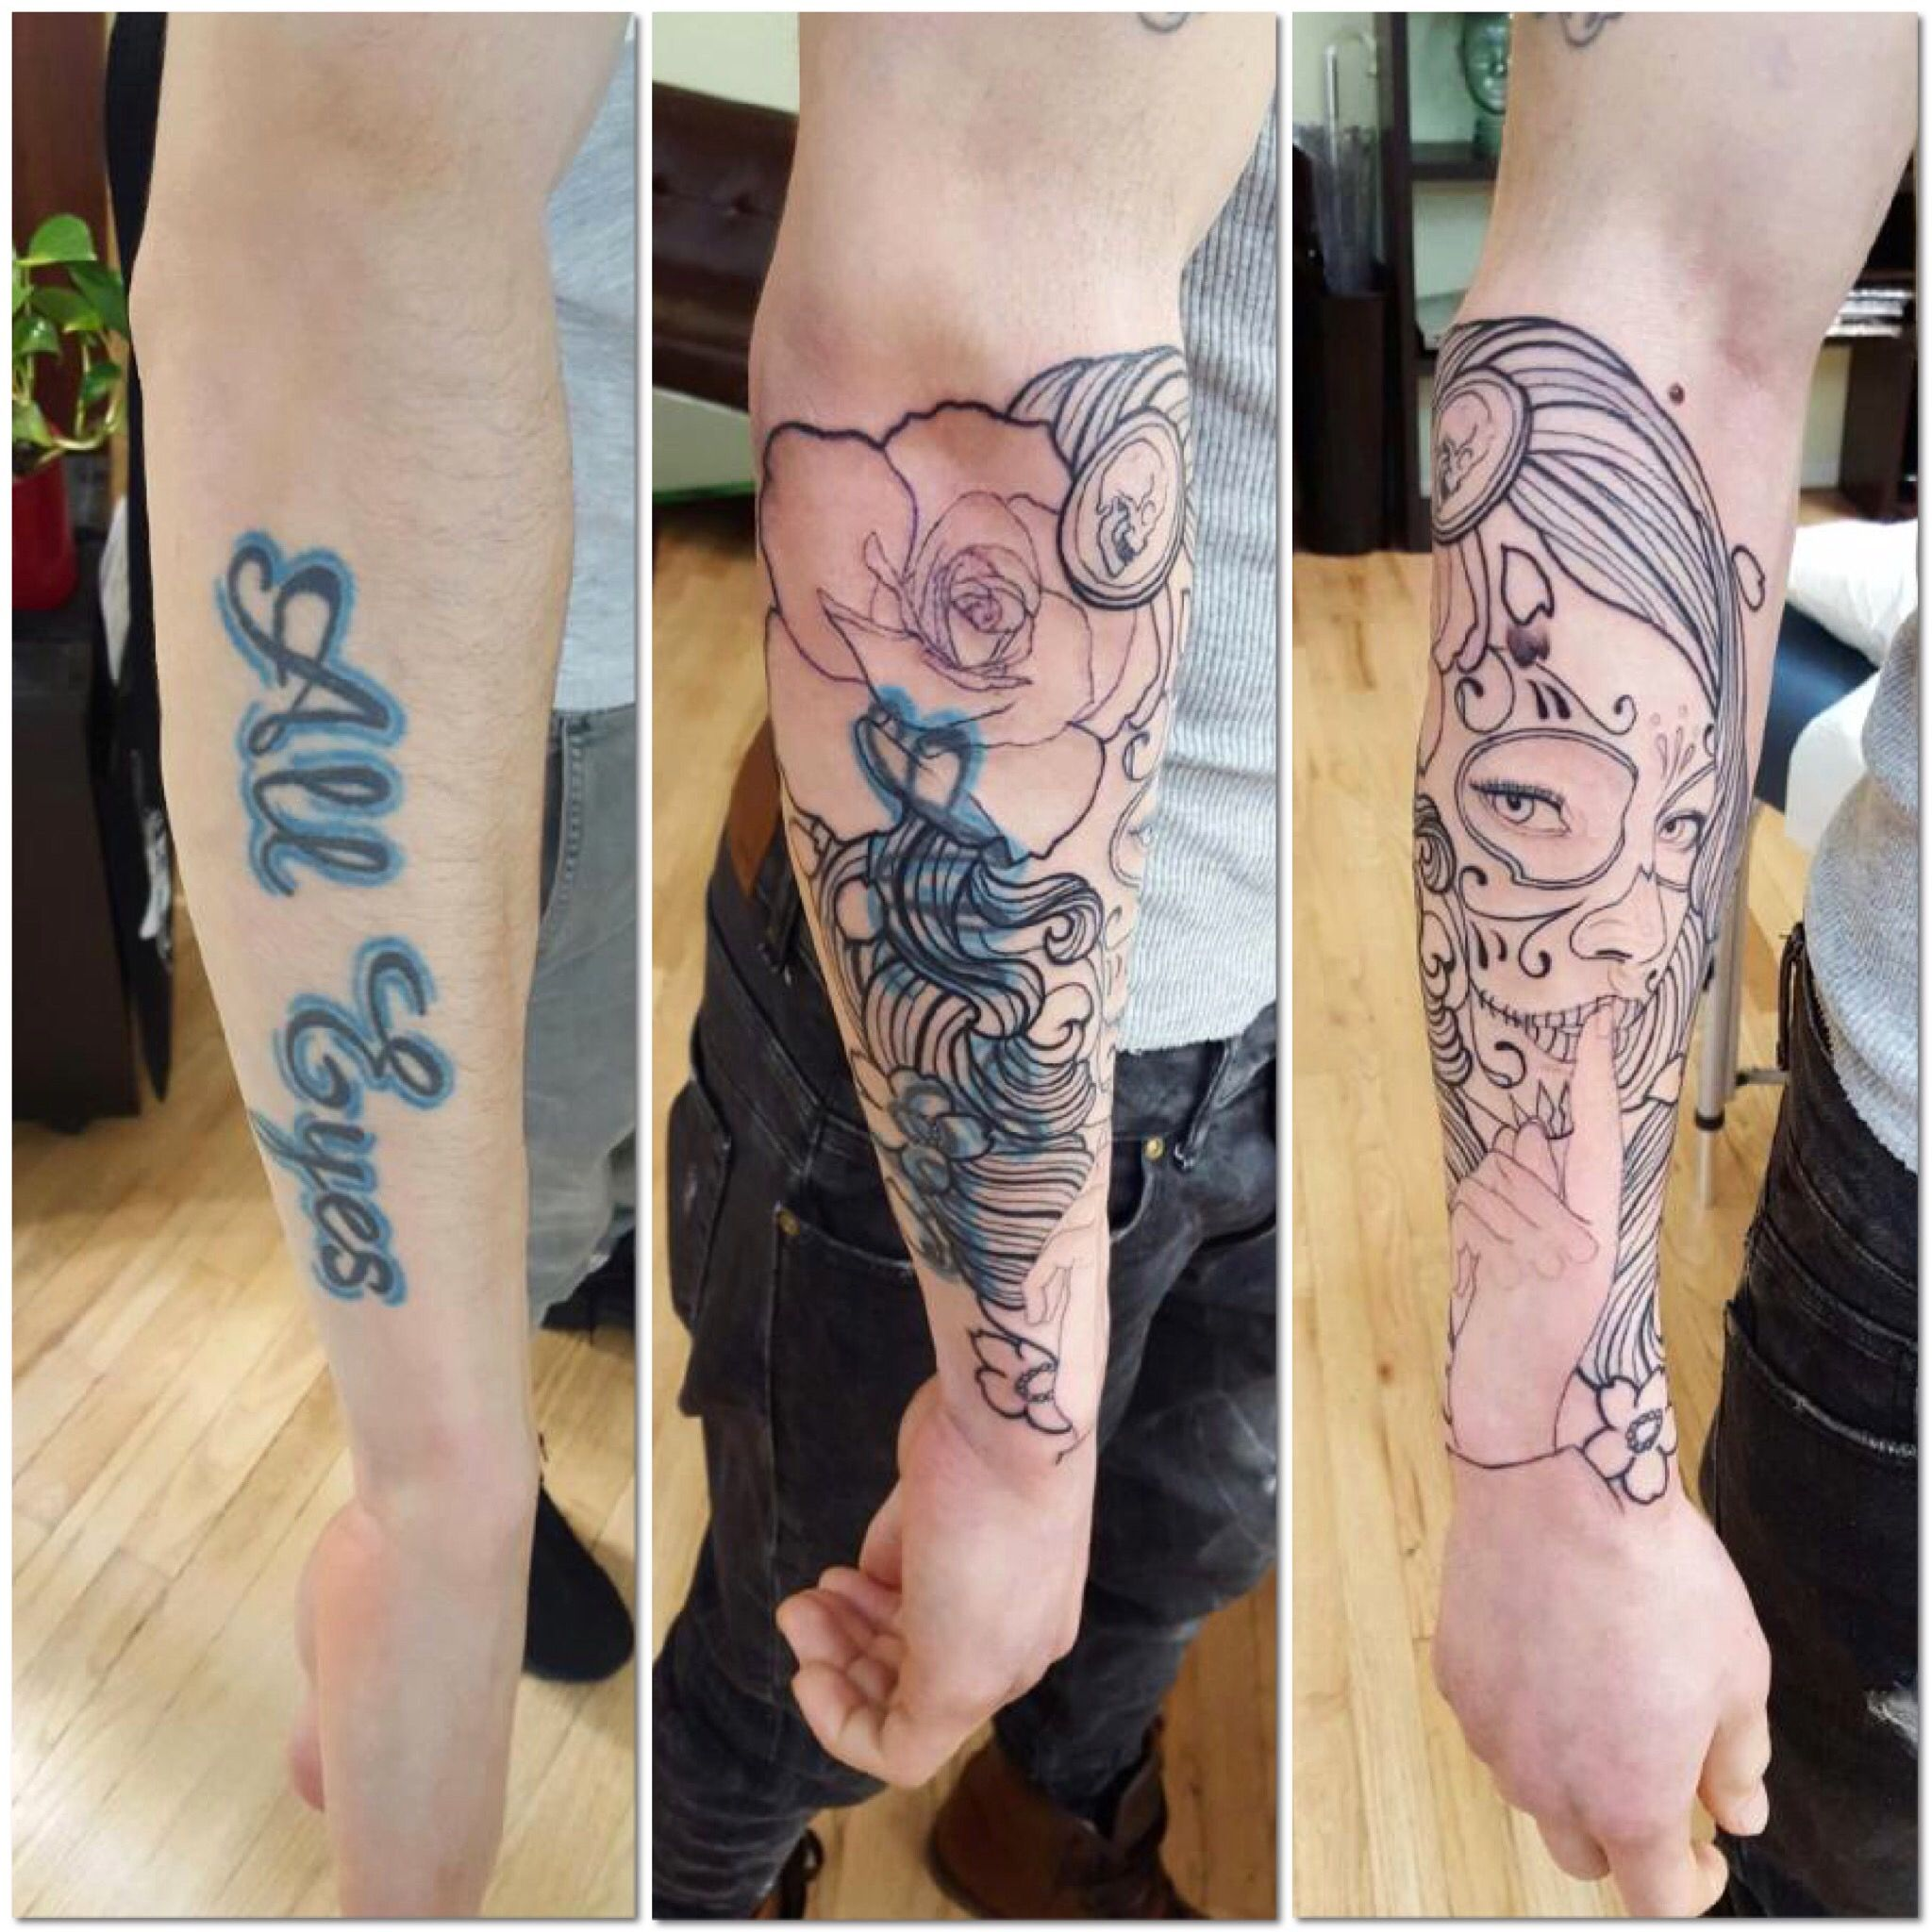 Cover up tattoo ideas for calf by ed cuellar  cover ups  pinterest  watches tattoo and cover up